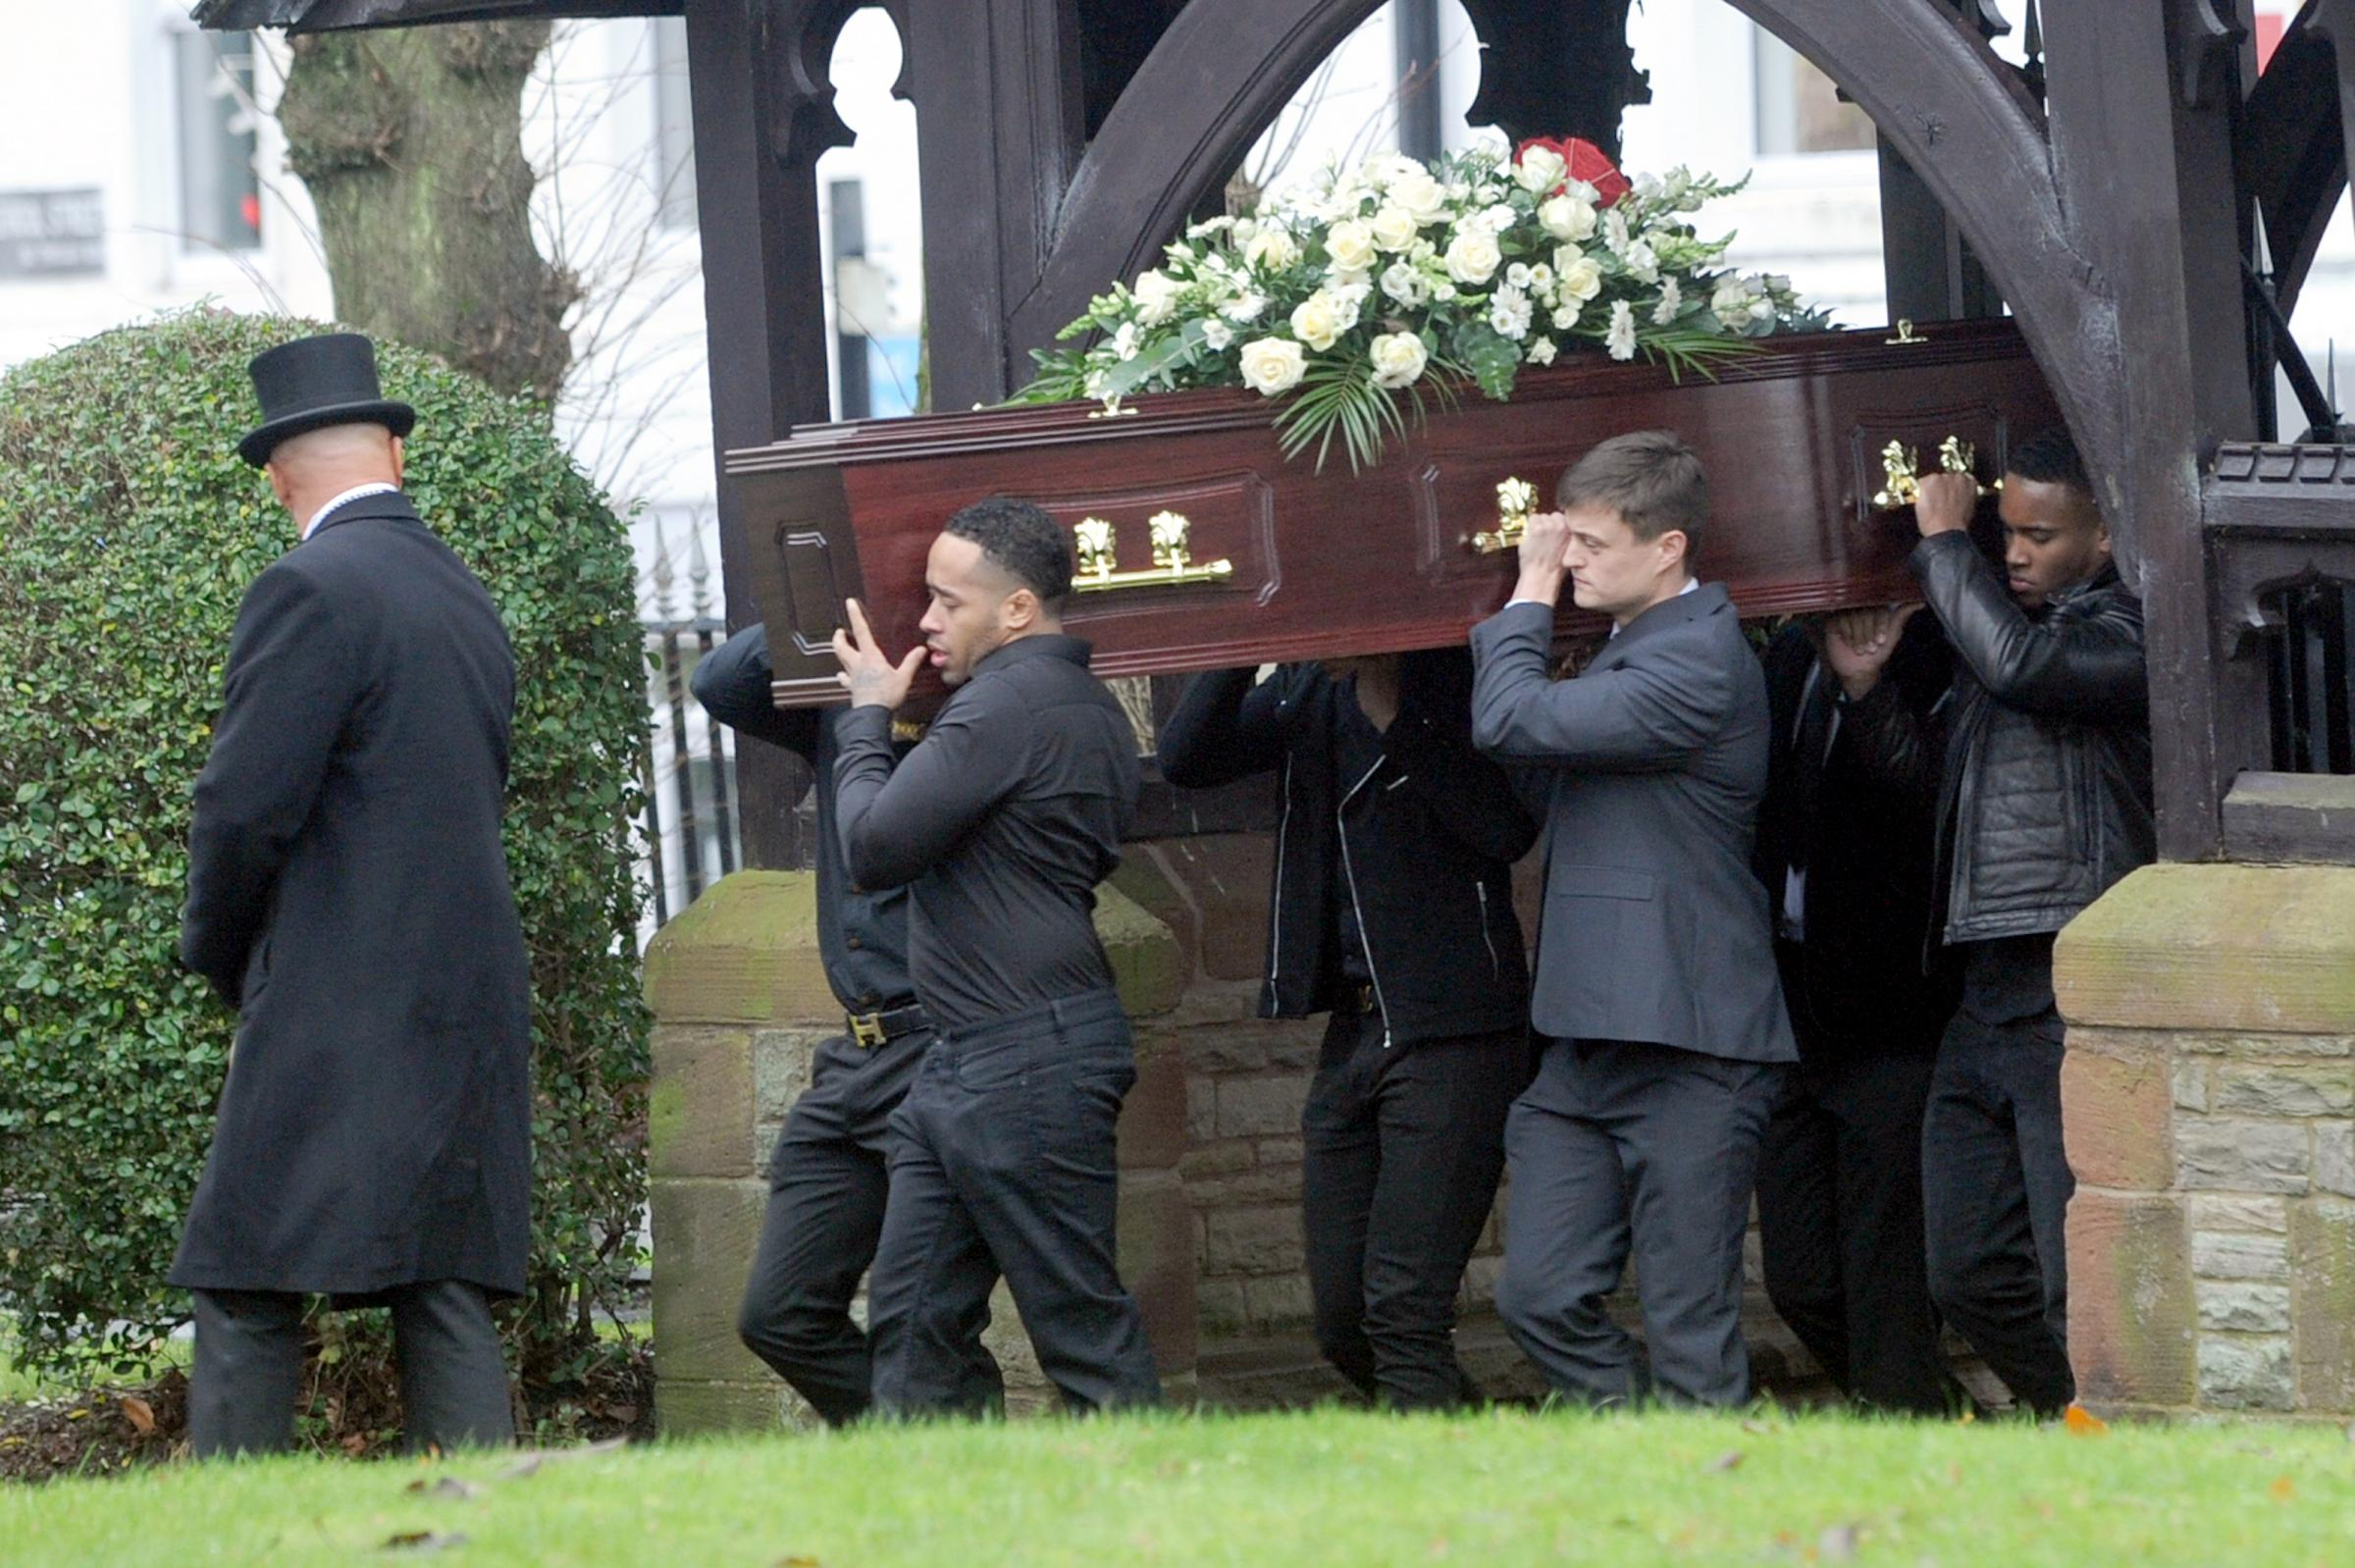 Hundreds of mourners attend funeral for shooting victim michael hundreds of mourners attend funeral for shooting victim michael blake izmirmasajfo